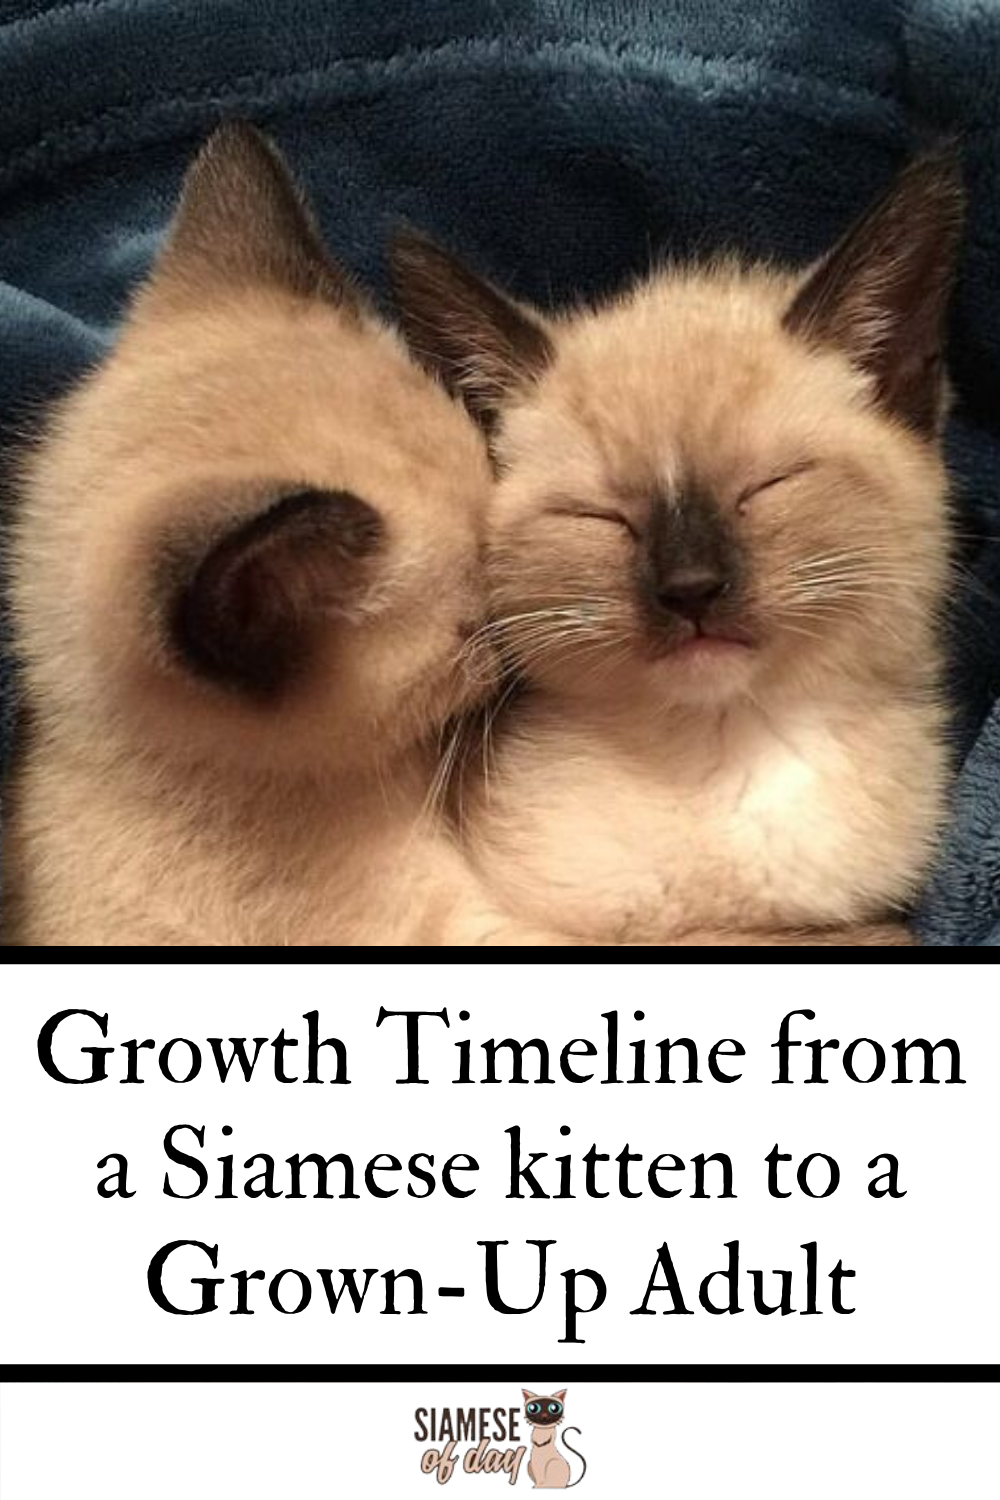 Siamese Kittens Growth Timeline Siamese Of Day In 2020 Siamese Kittens Kittens Siamese